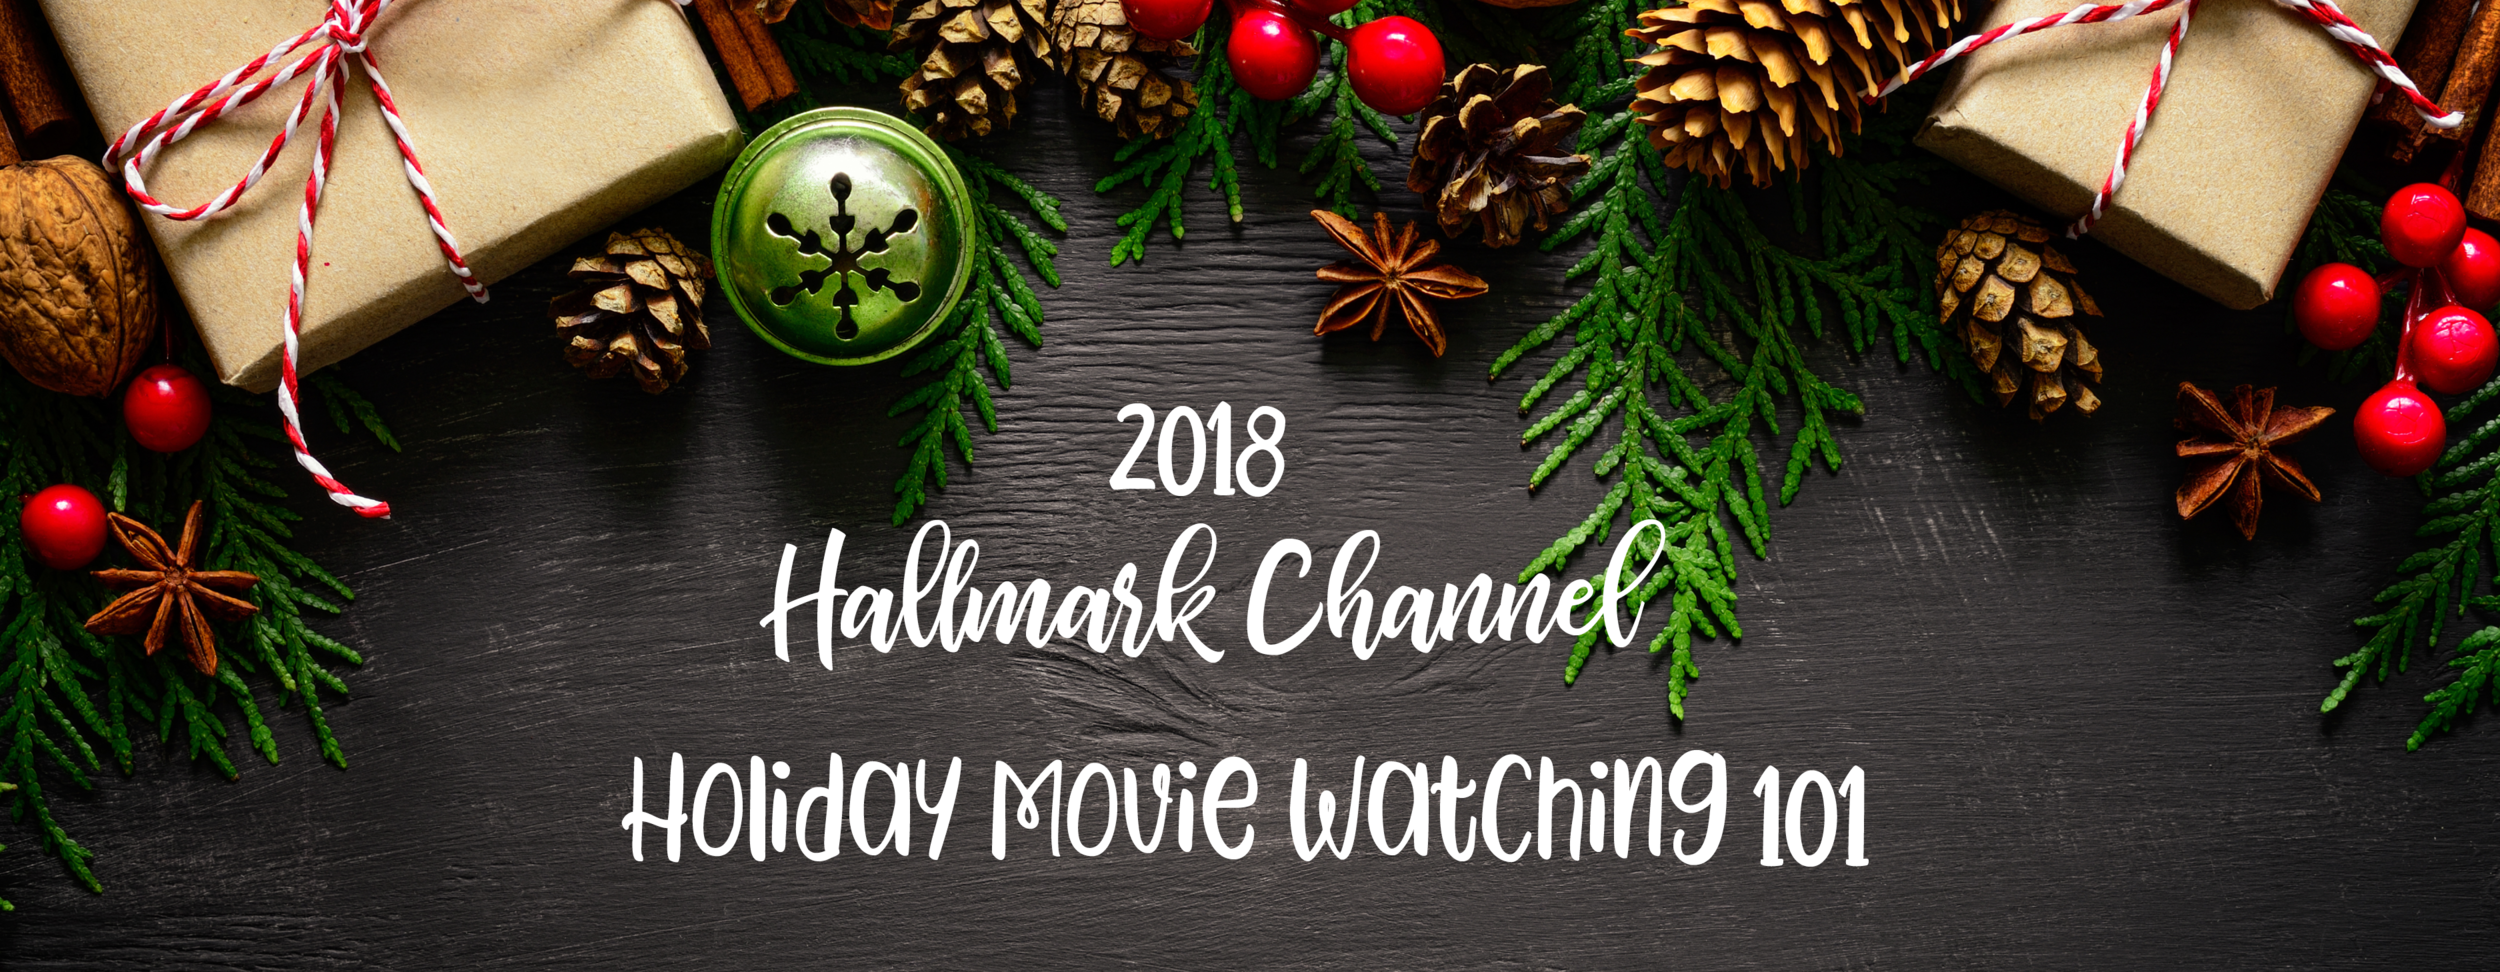 Holiday Movie Watching 101.png